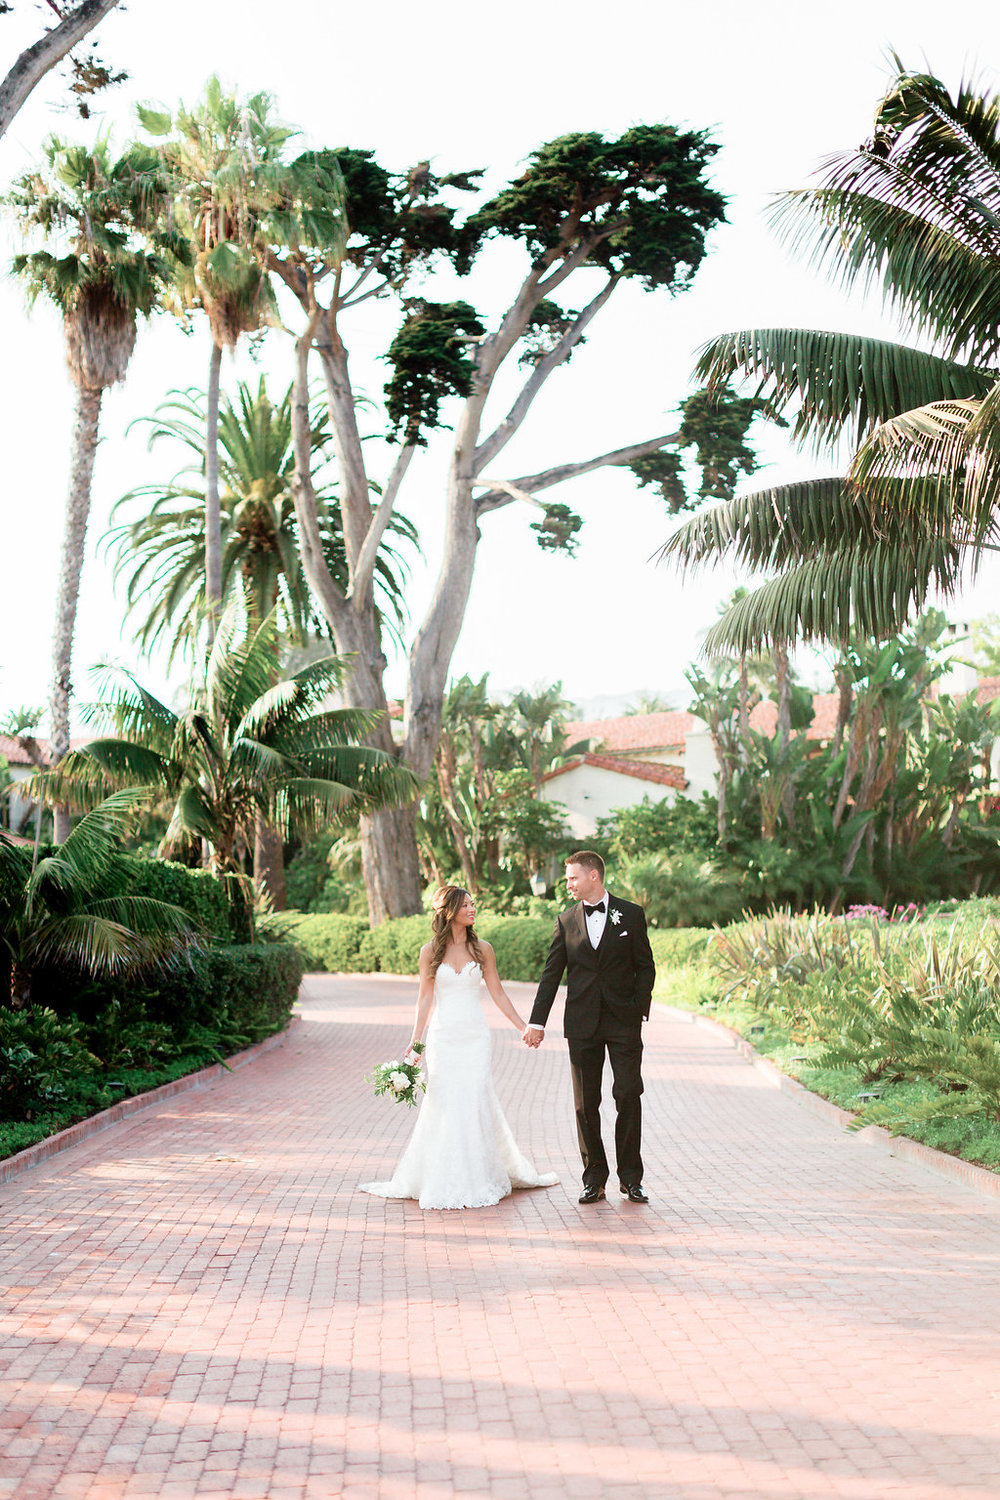 santa-barbara-elopement-elope-wedding-planner-coordinator-day-of-four-seasons-biltmore-ocean-front-view-garden-pink-white-green-montecito-black-tie (7).jpg